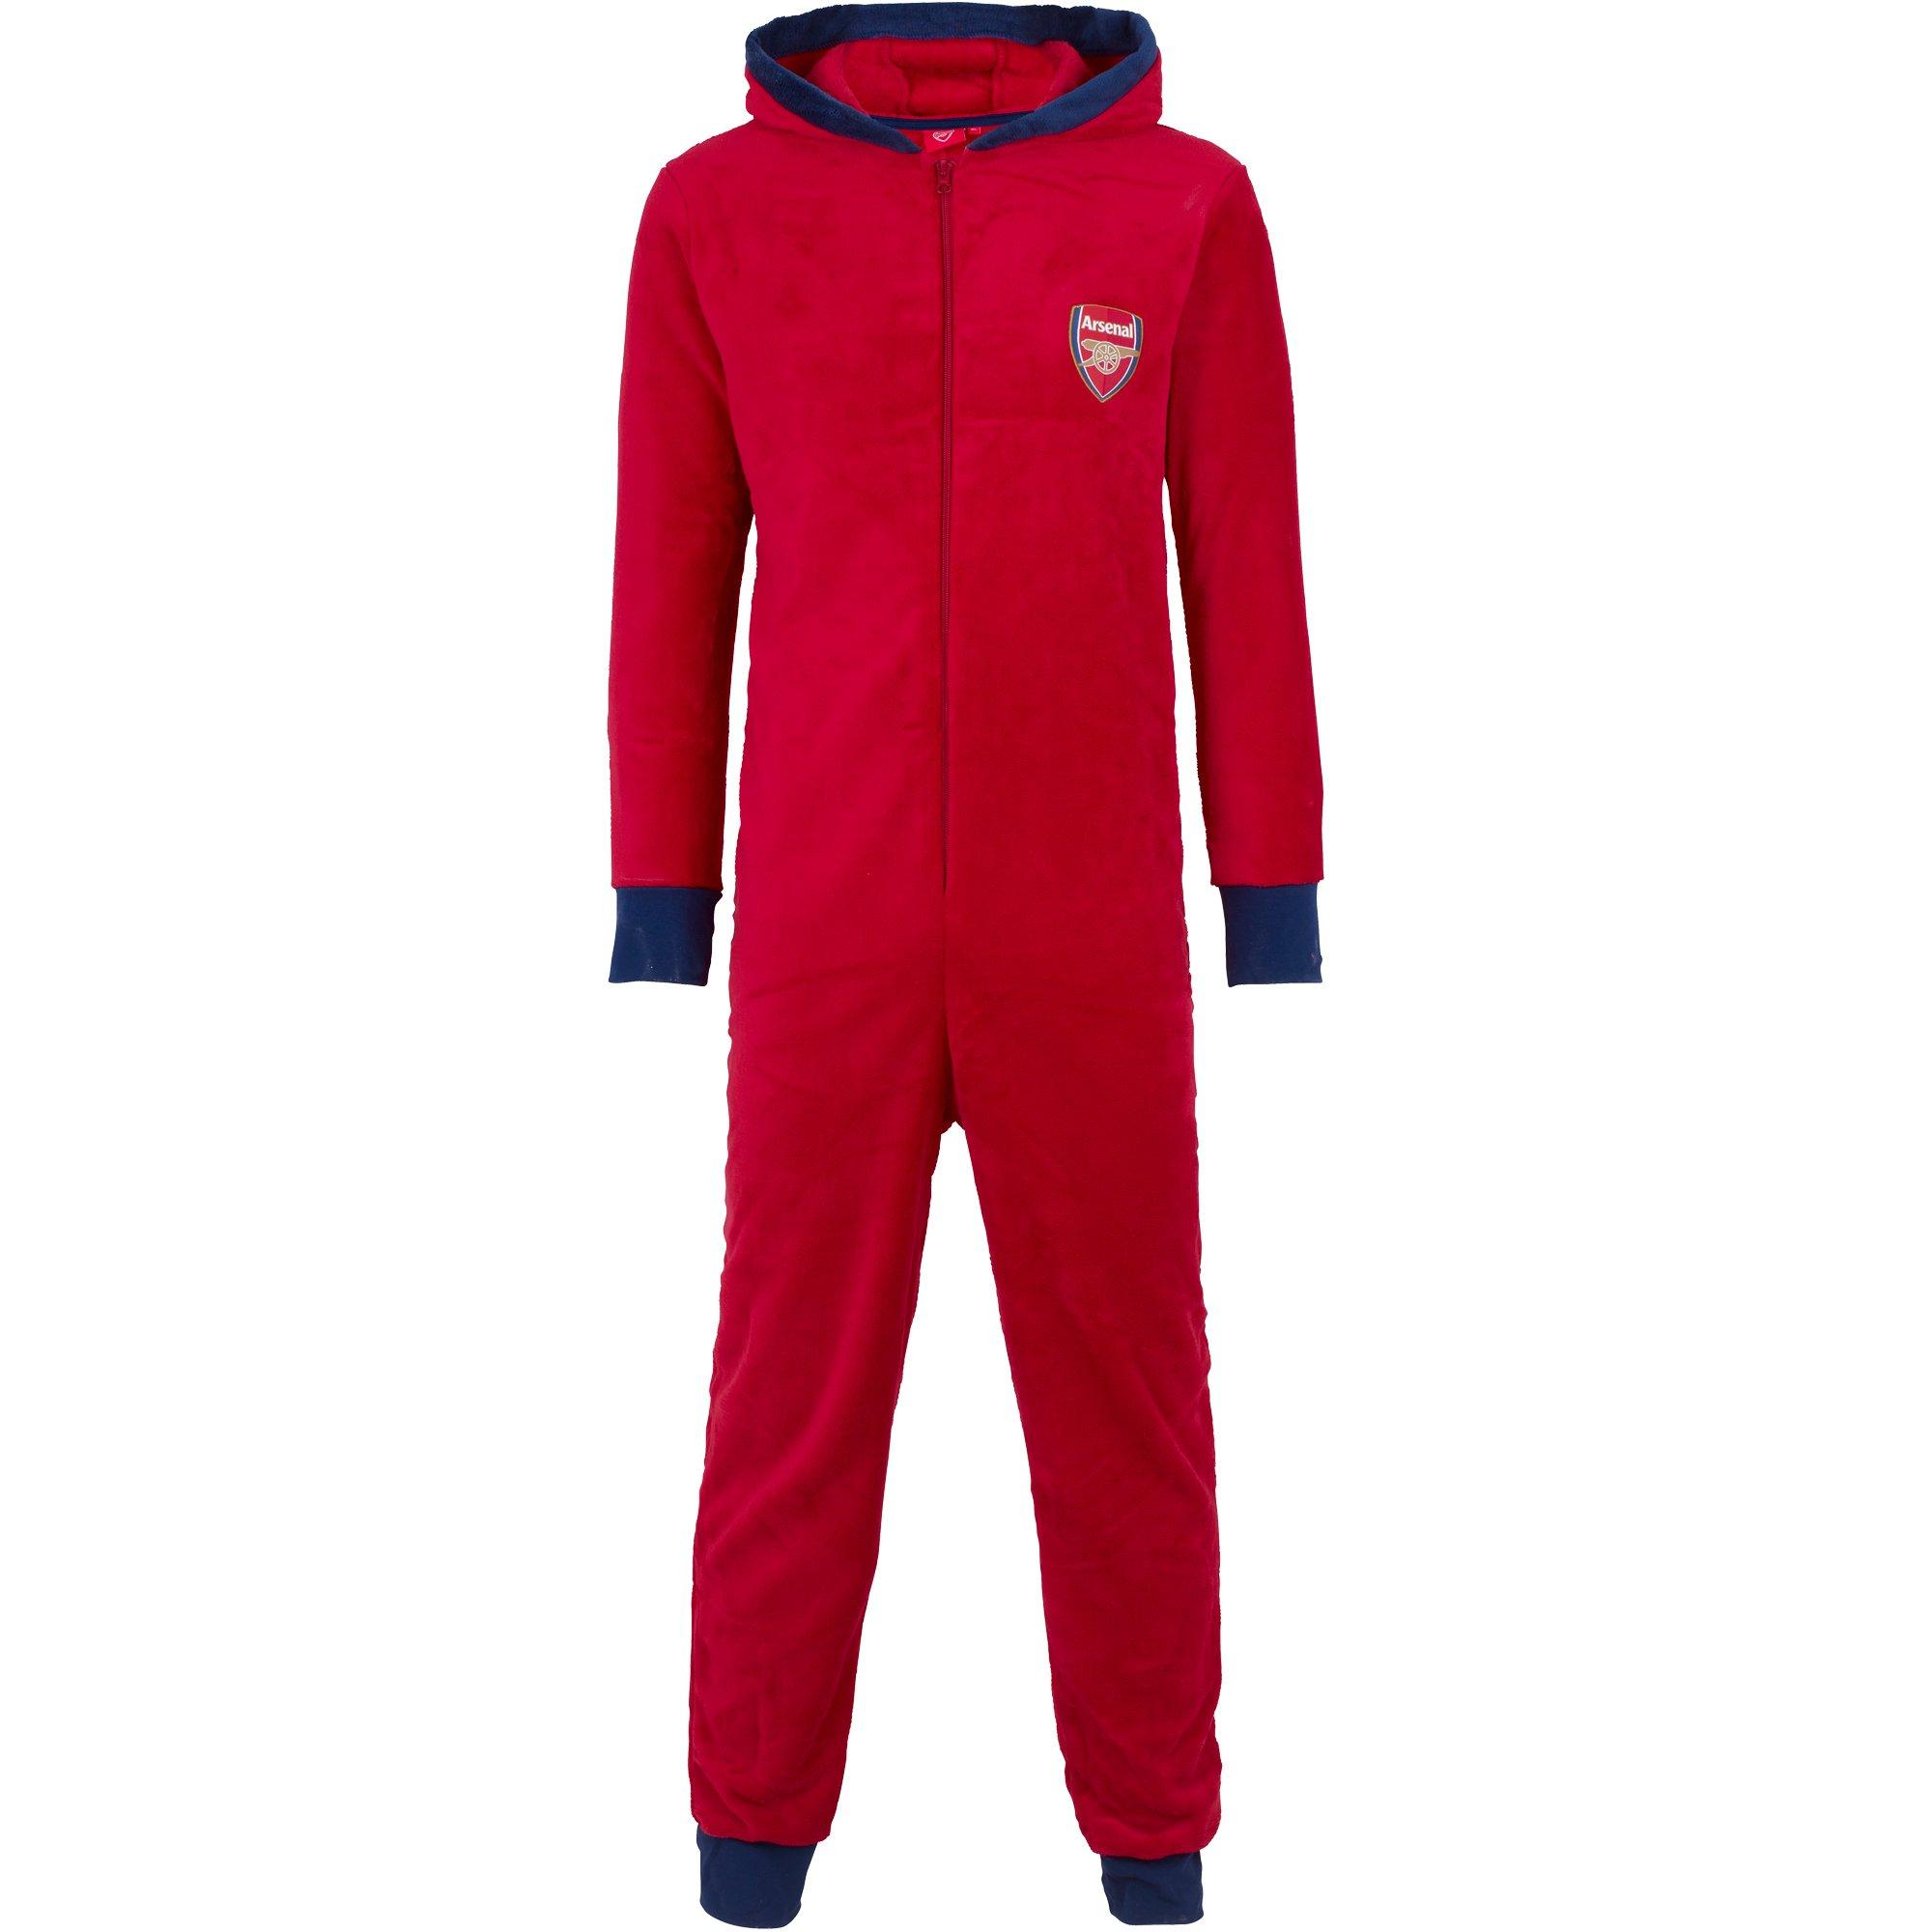 Arsenal Fleece All-In-One Red Pyjama XS-S, Red